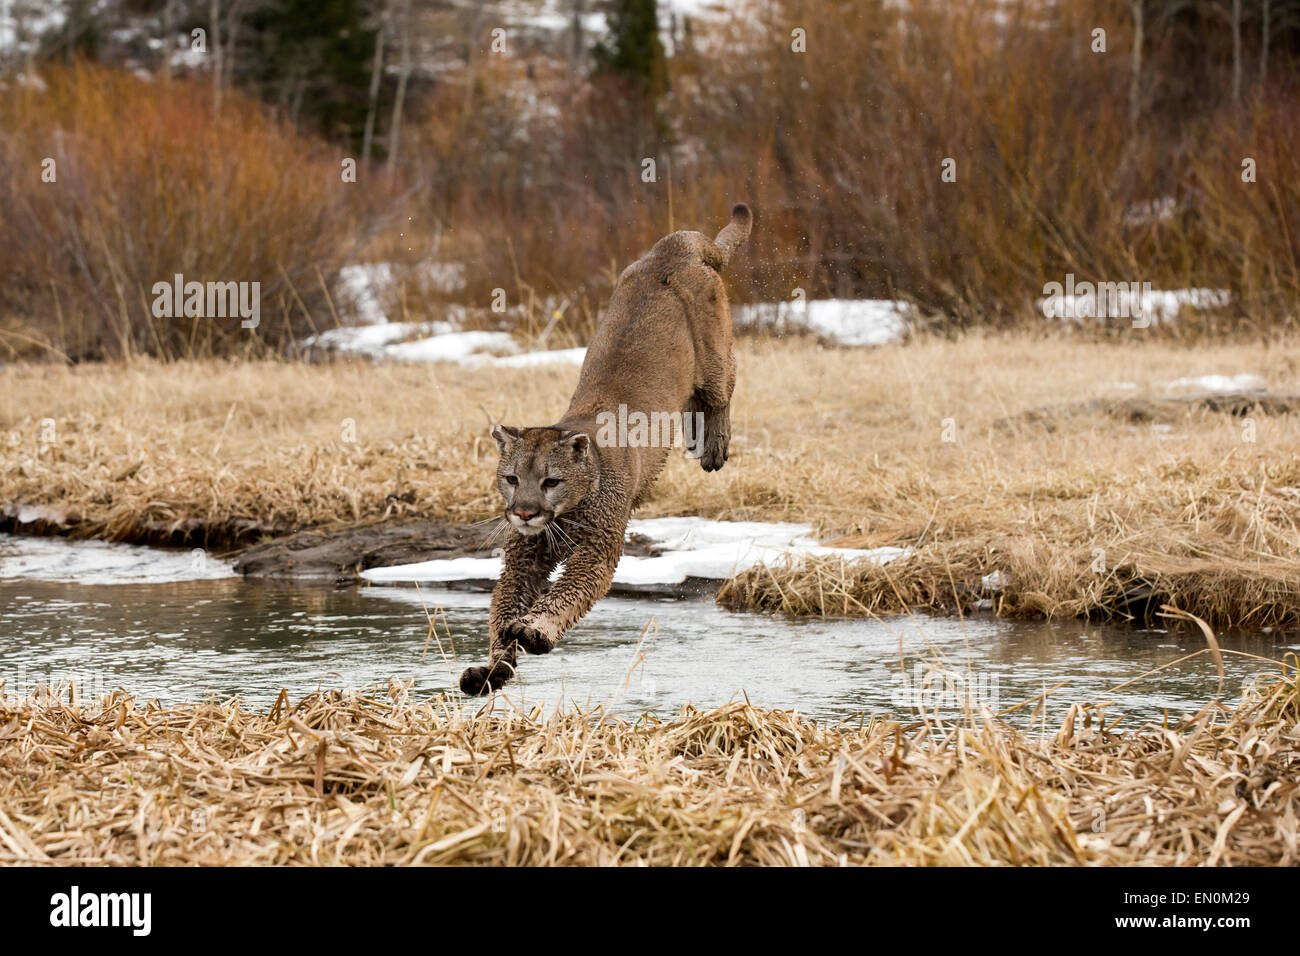 Mountain Lion (Felis concolor) jumping through the air to cross the river in Winter - Stock Image